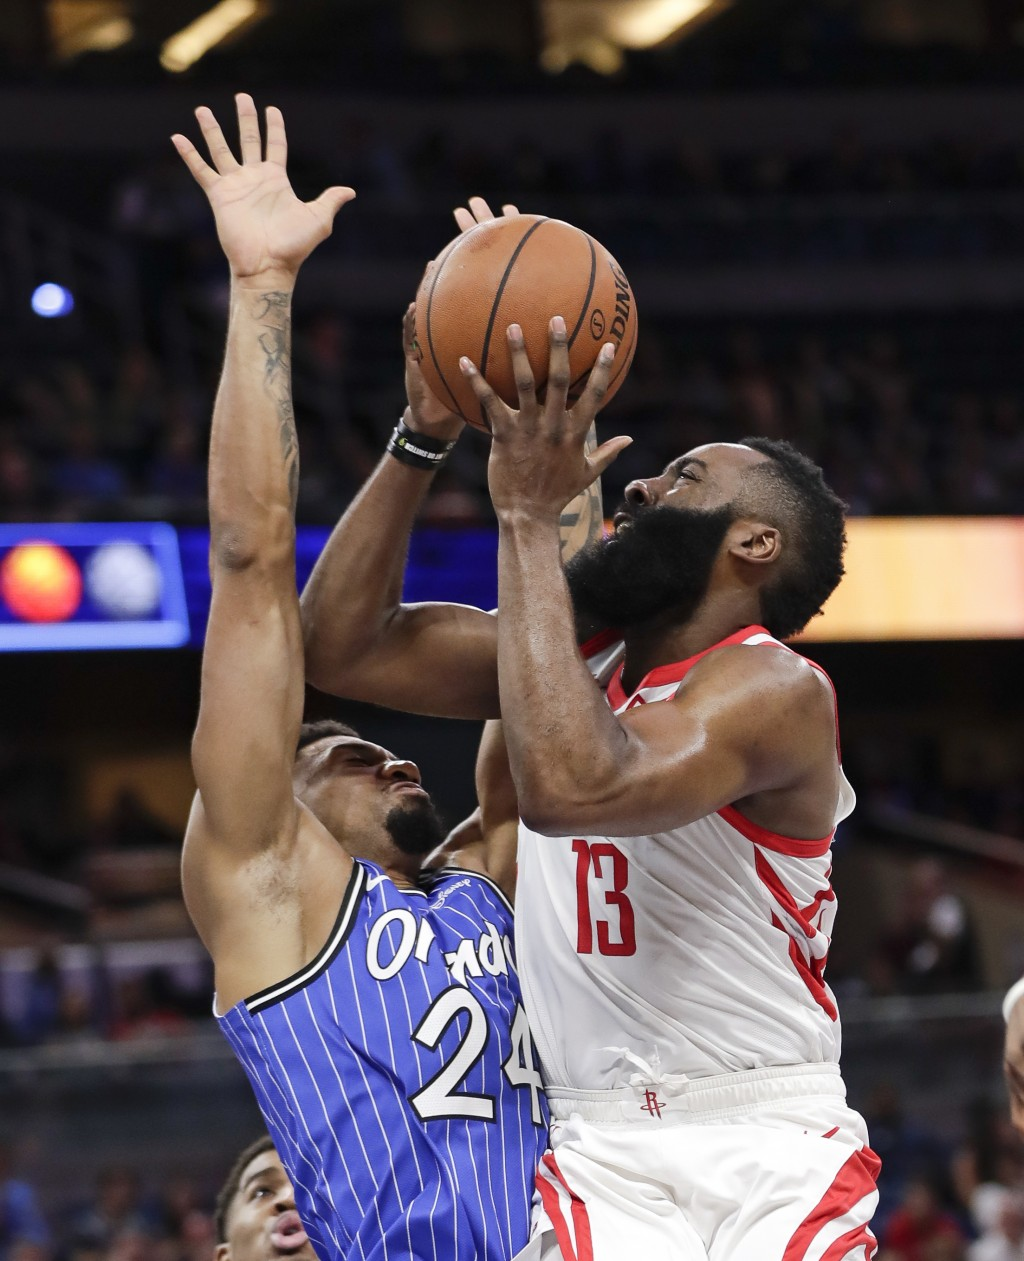 Houston Rockets' James Harden (13) goes up to shoot against Orlando Magic's Khem Birch (24) during the first half of an NBA basketball game, Sunday, J